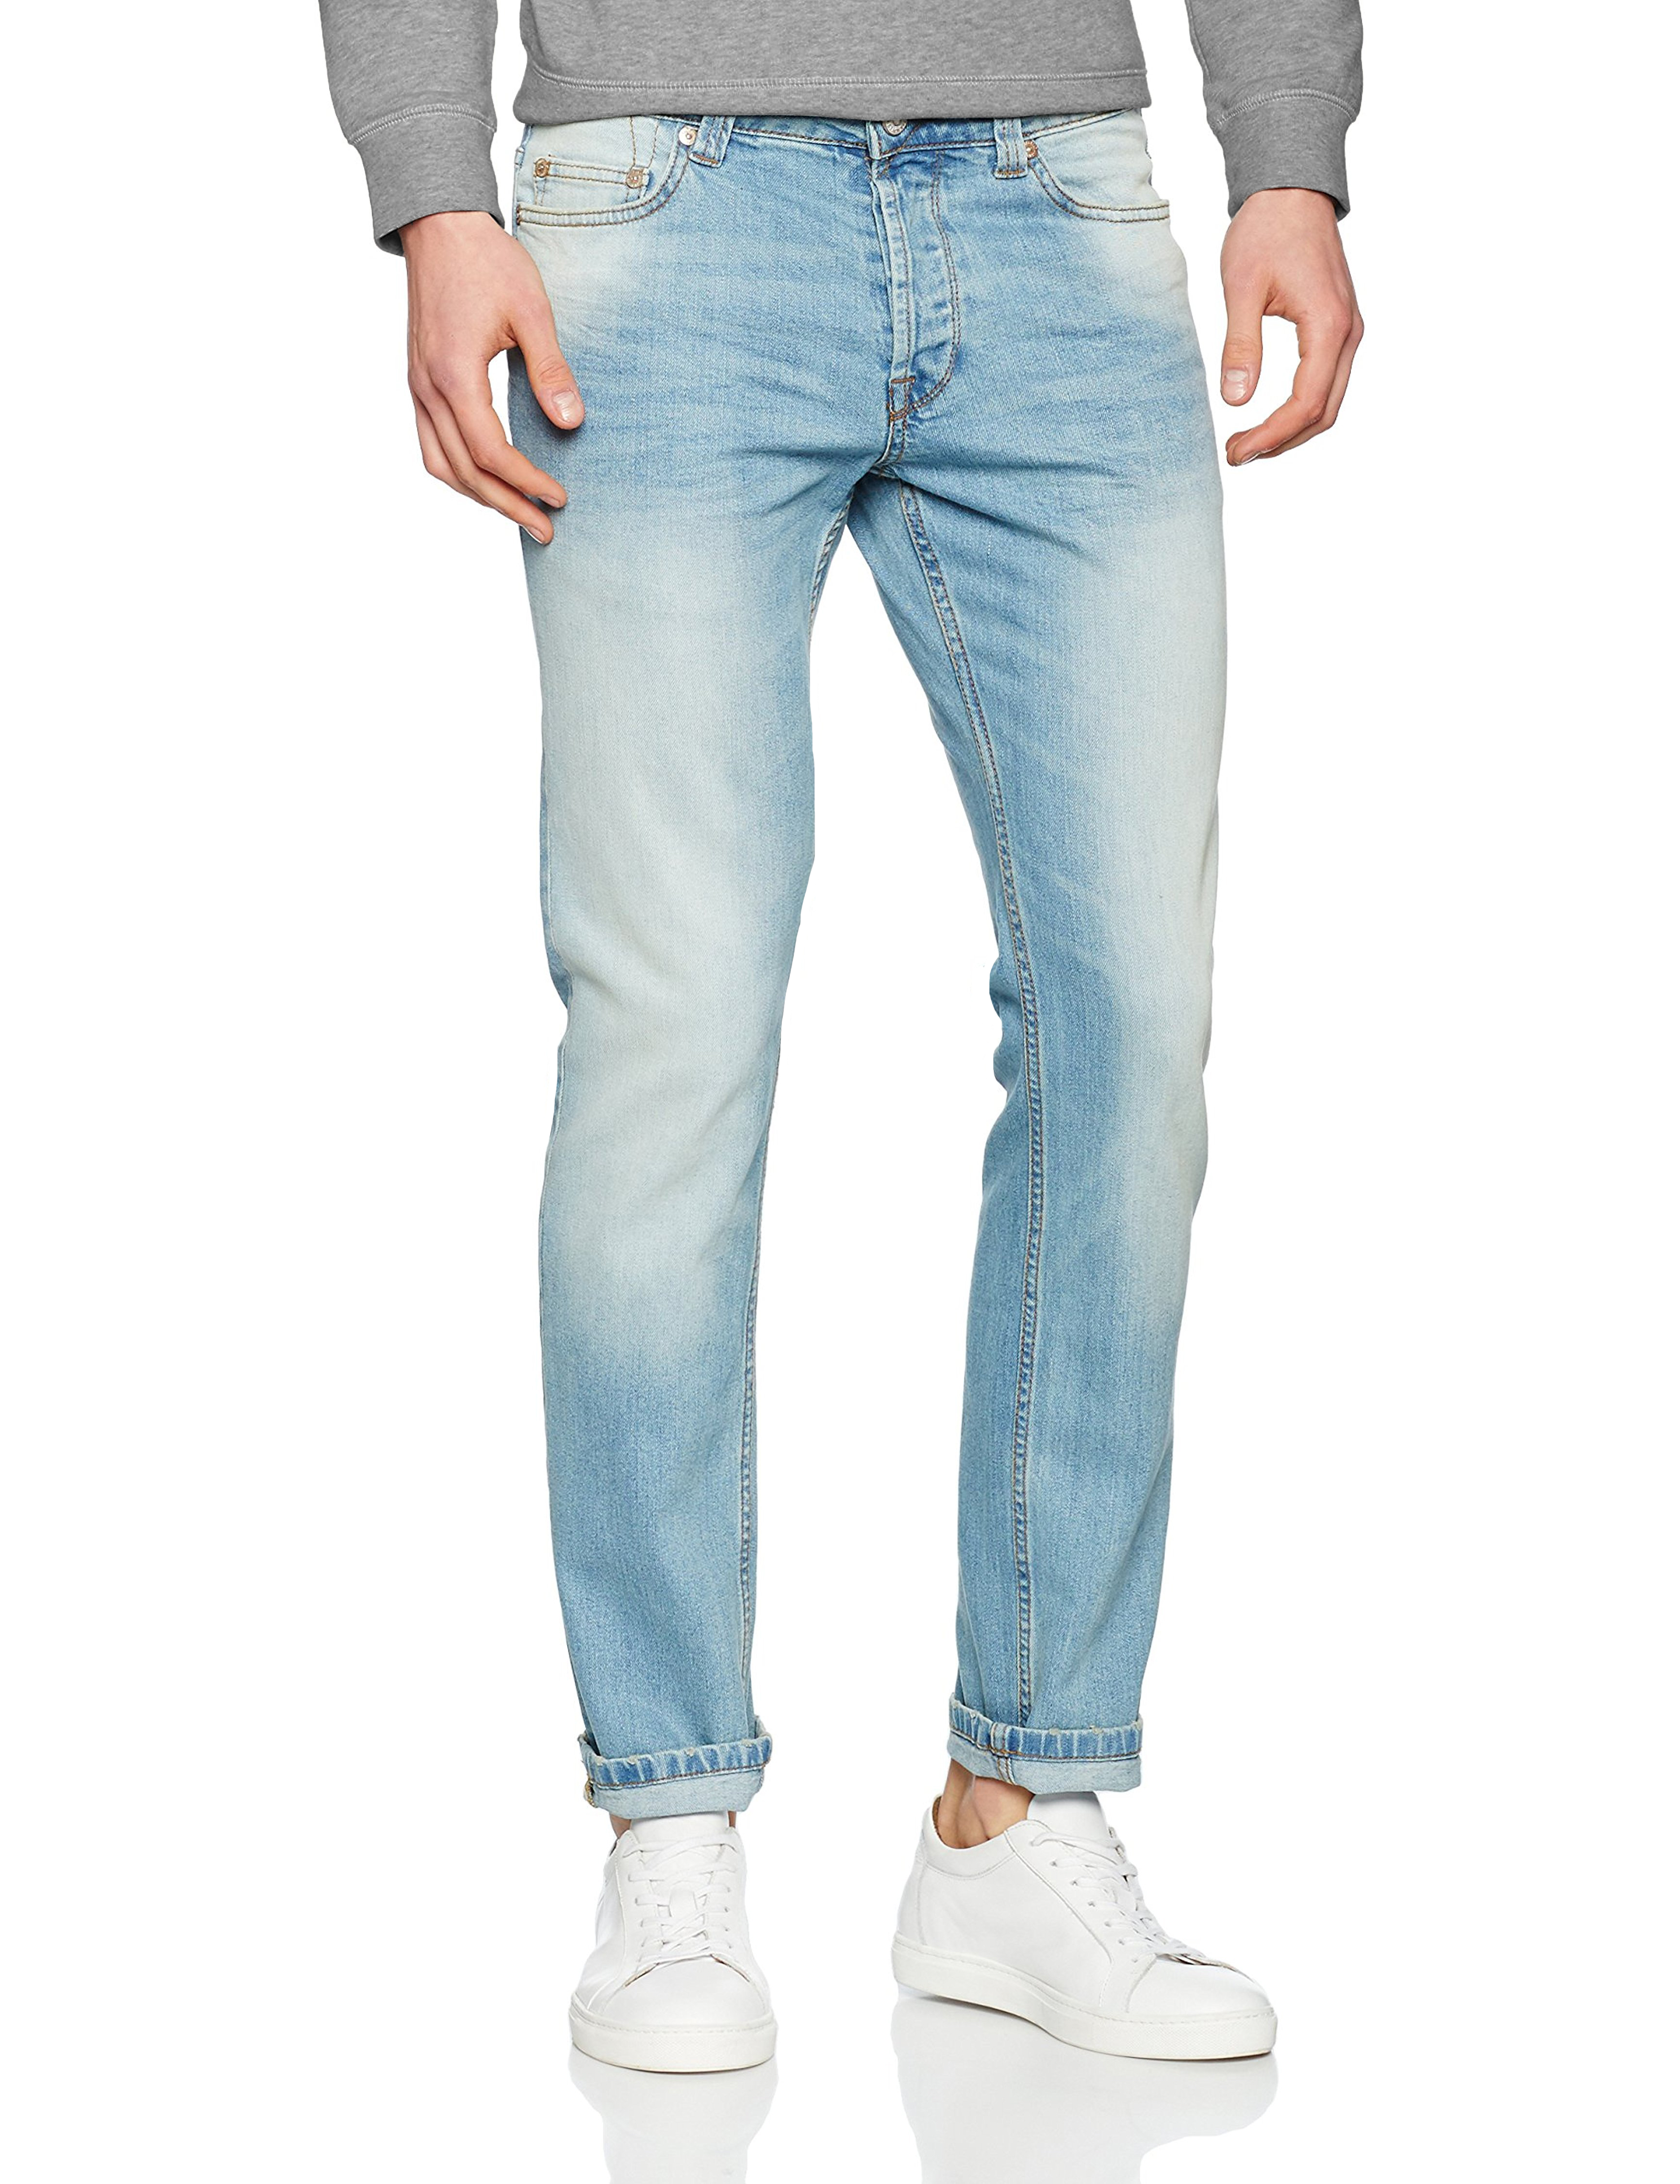 0163051daf27 Click on the Image to Enlarge. More Details. Only   Sons Loom fit is slim  stretch denim.